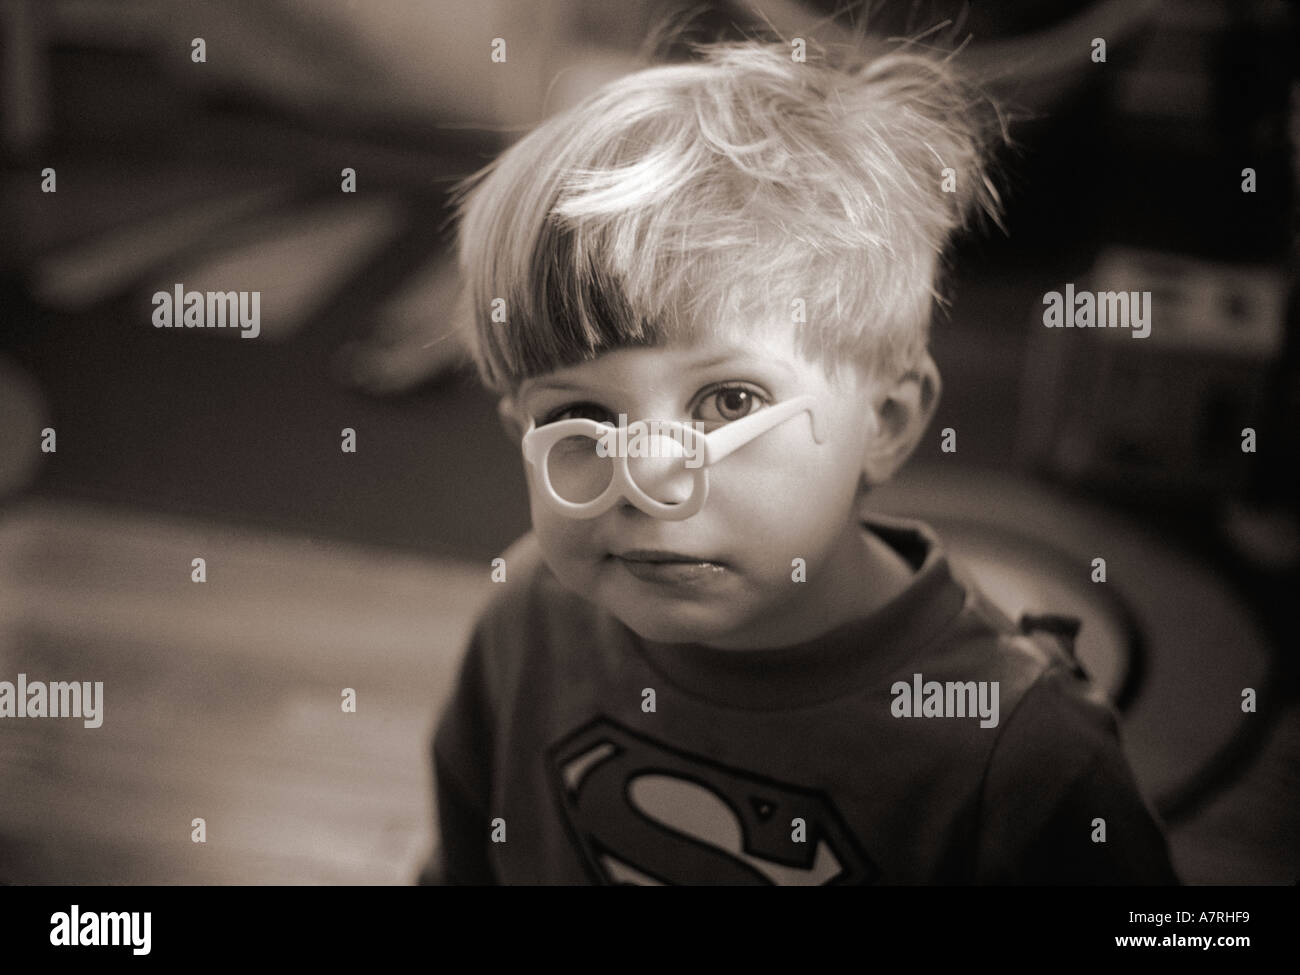 Small boy with toy glasses on face - Stock Image